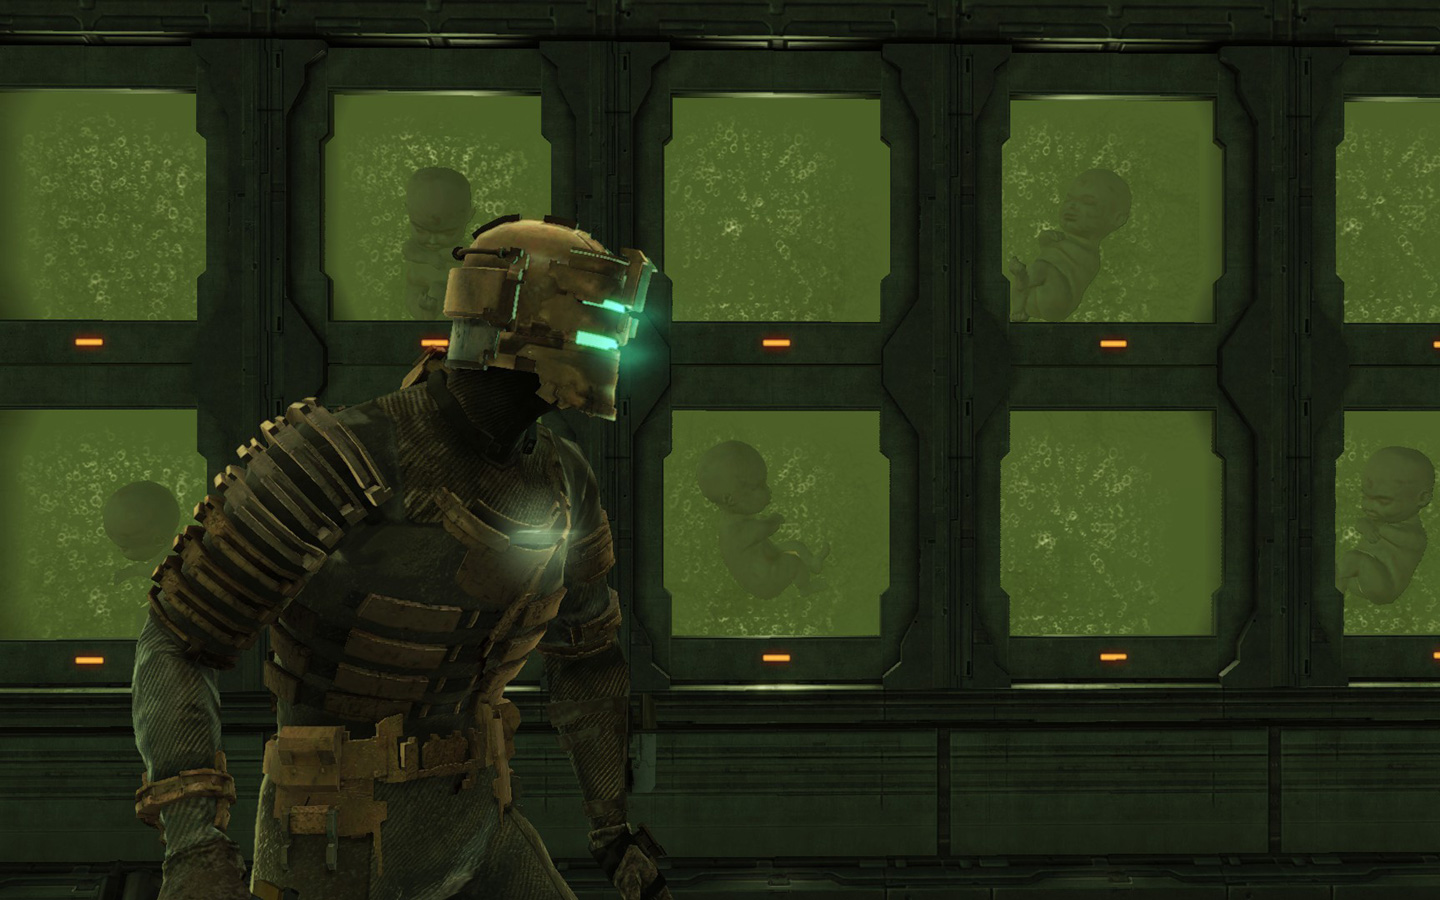 Free Dead Space Wallpaper in 1440x900